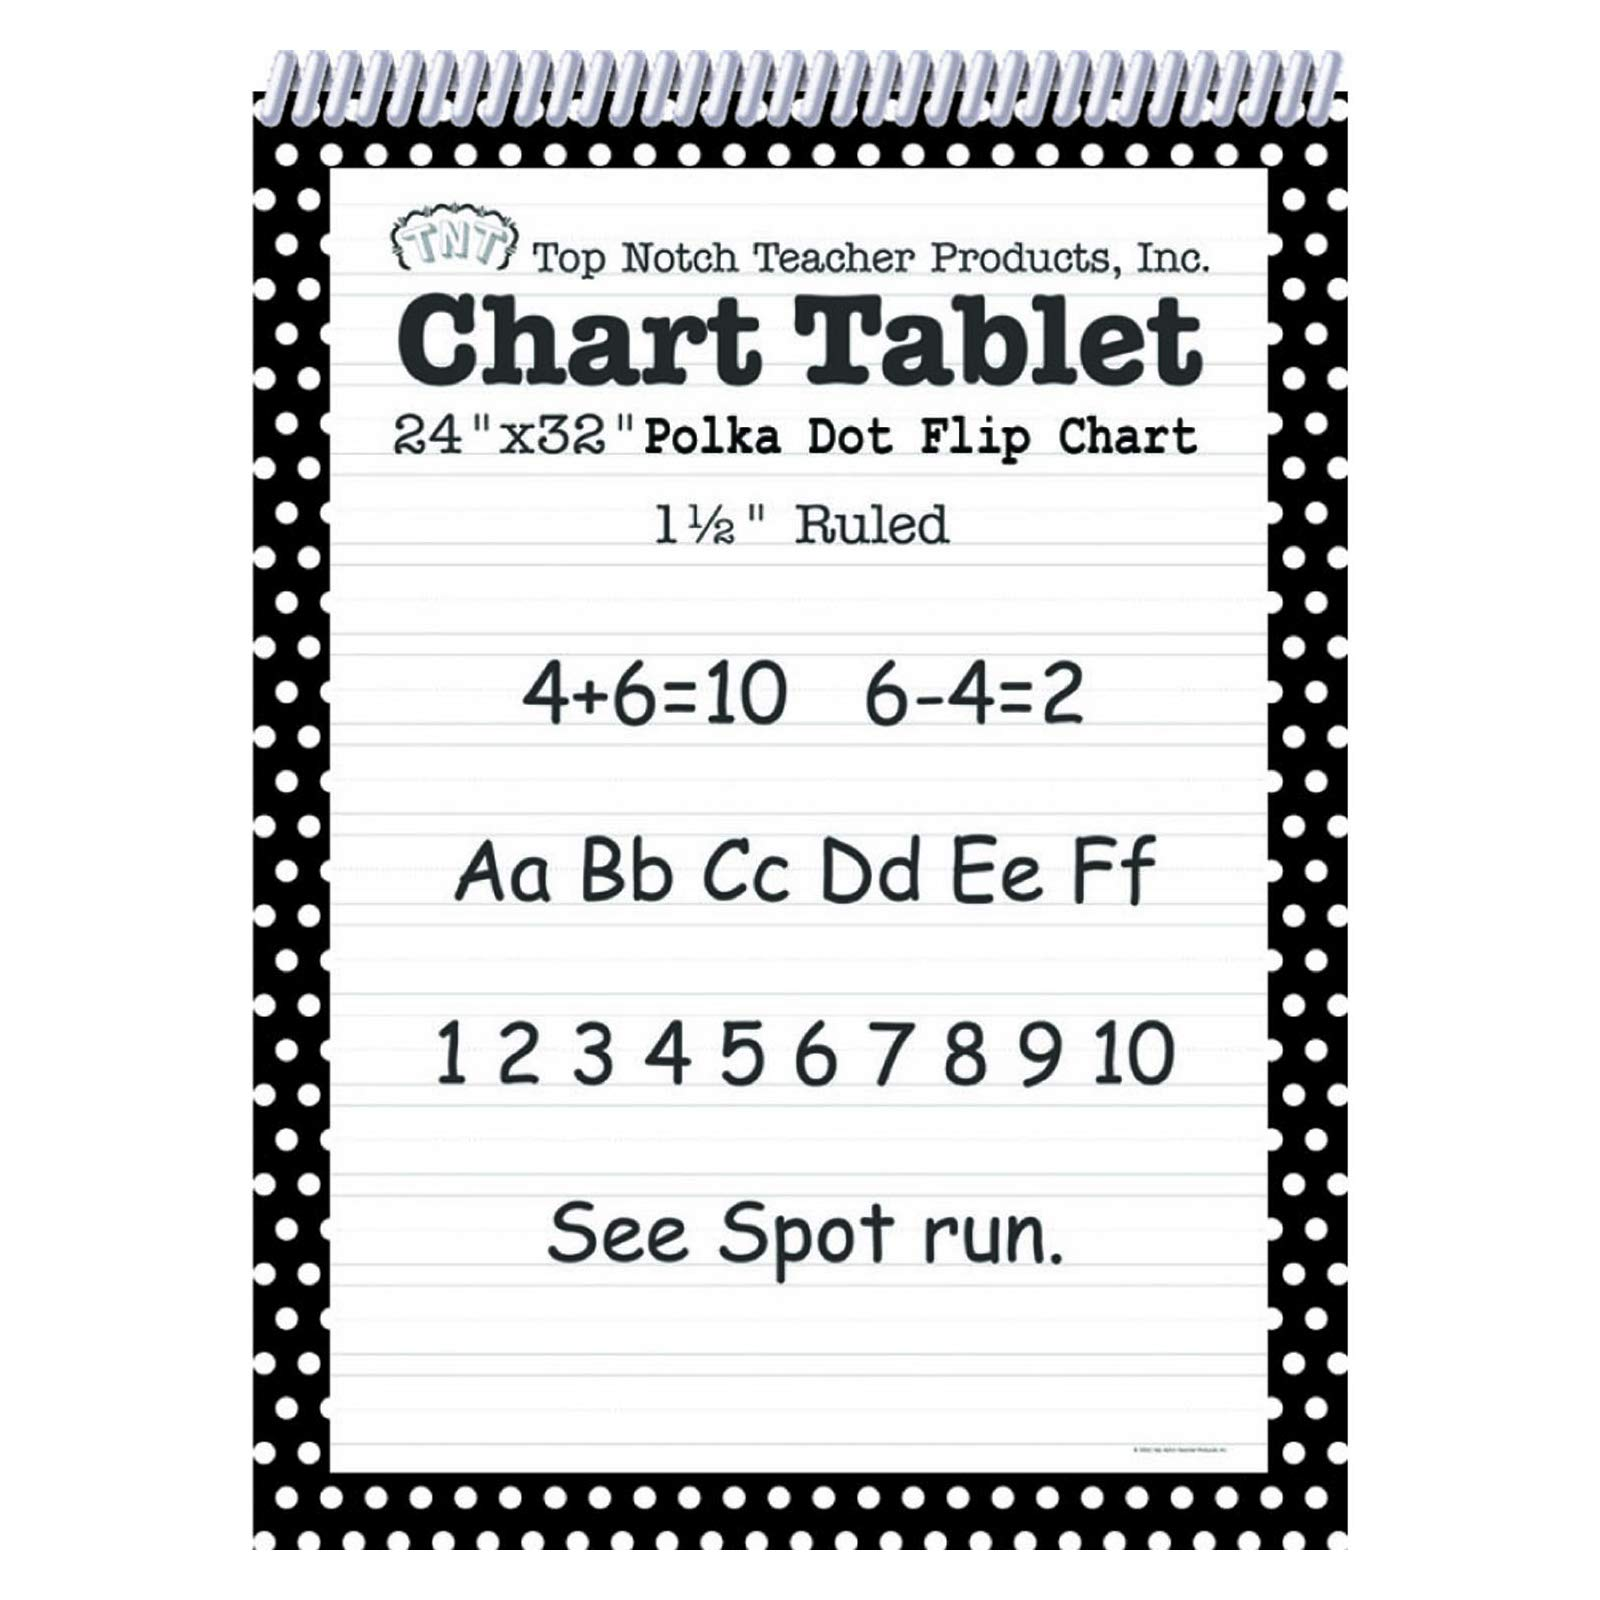 Top Notch Teacher Products TOP3849BN Chart Tablet, 24'' x 32'', 1-1/2'' Ruled, Black Polka Dot, 25 Sheets, Pack of 2 by Top Notch Teacher Products